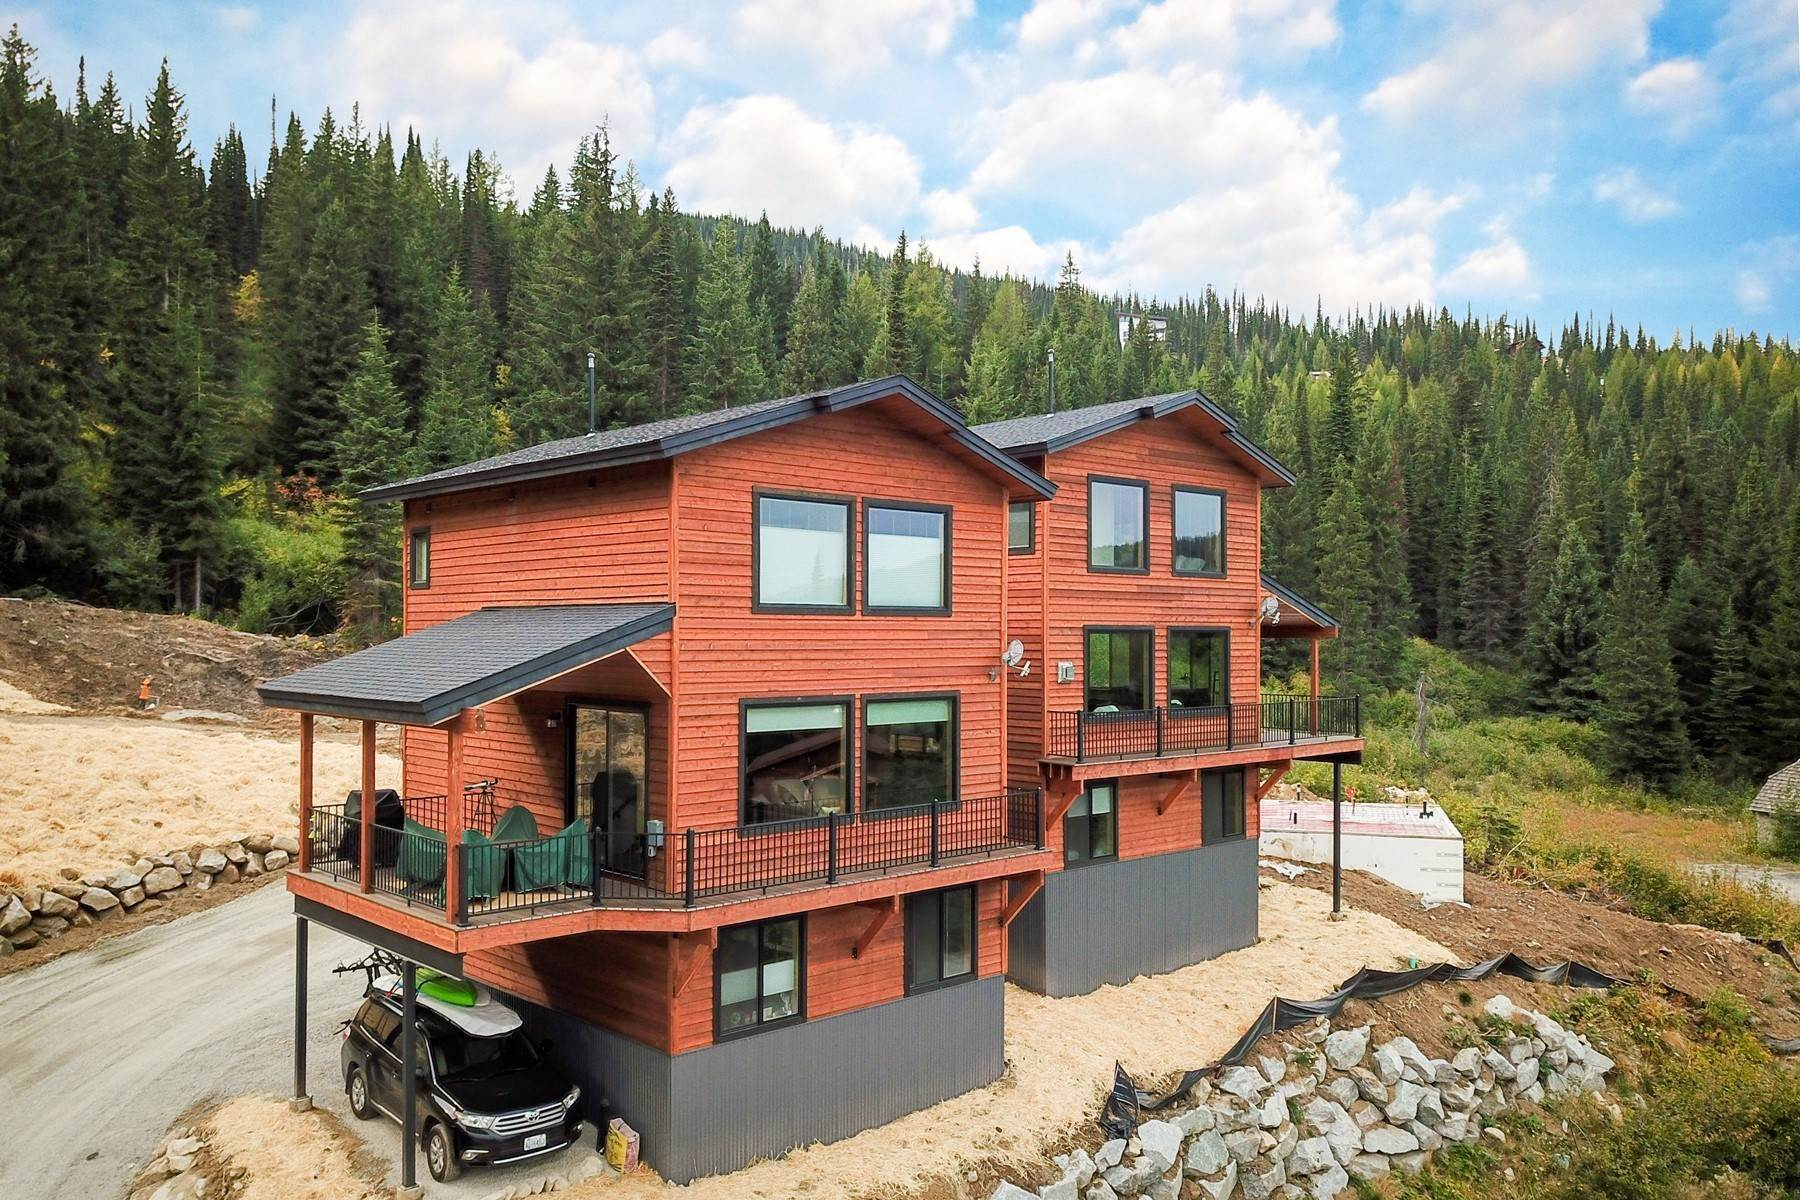 Single Family Homes for Sale at Schweitzer Mountain Getaway Lot 12 Harrison Lane Sandpoint, Idaho 83864